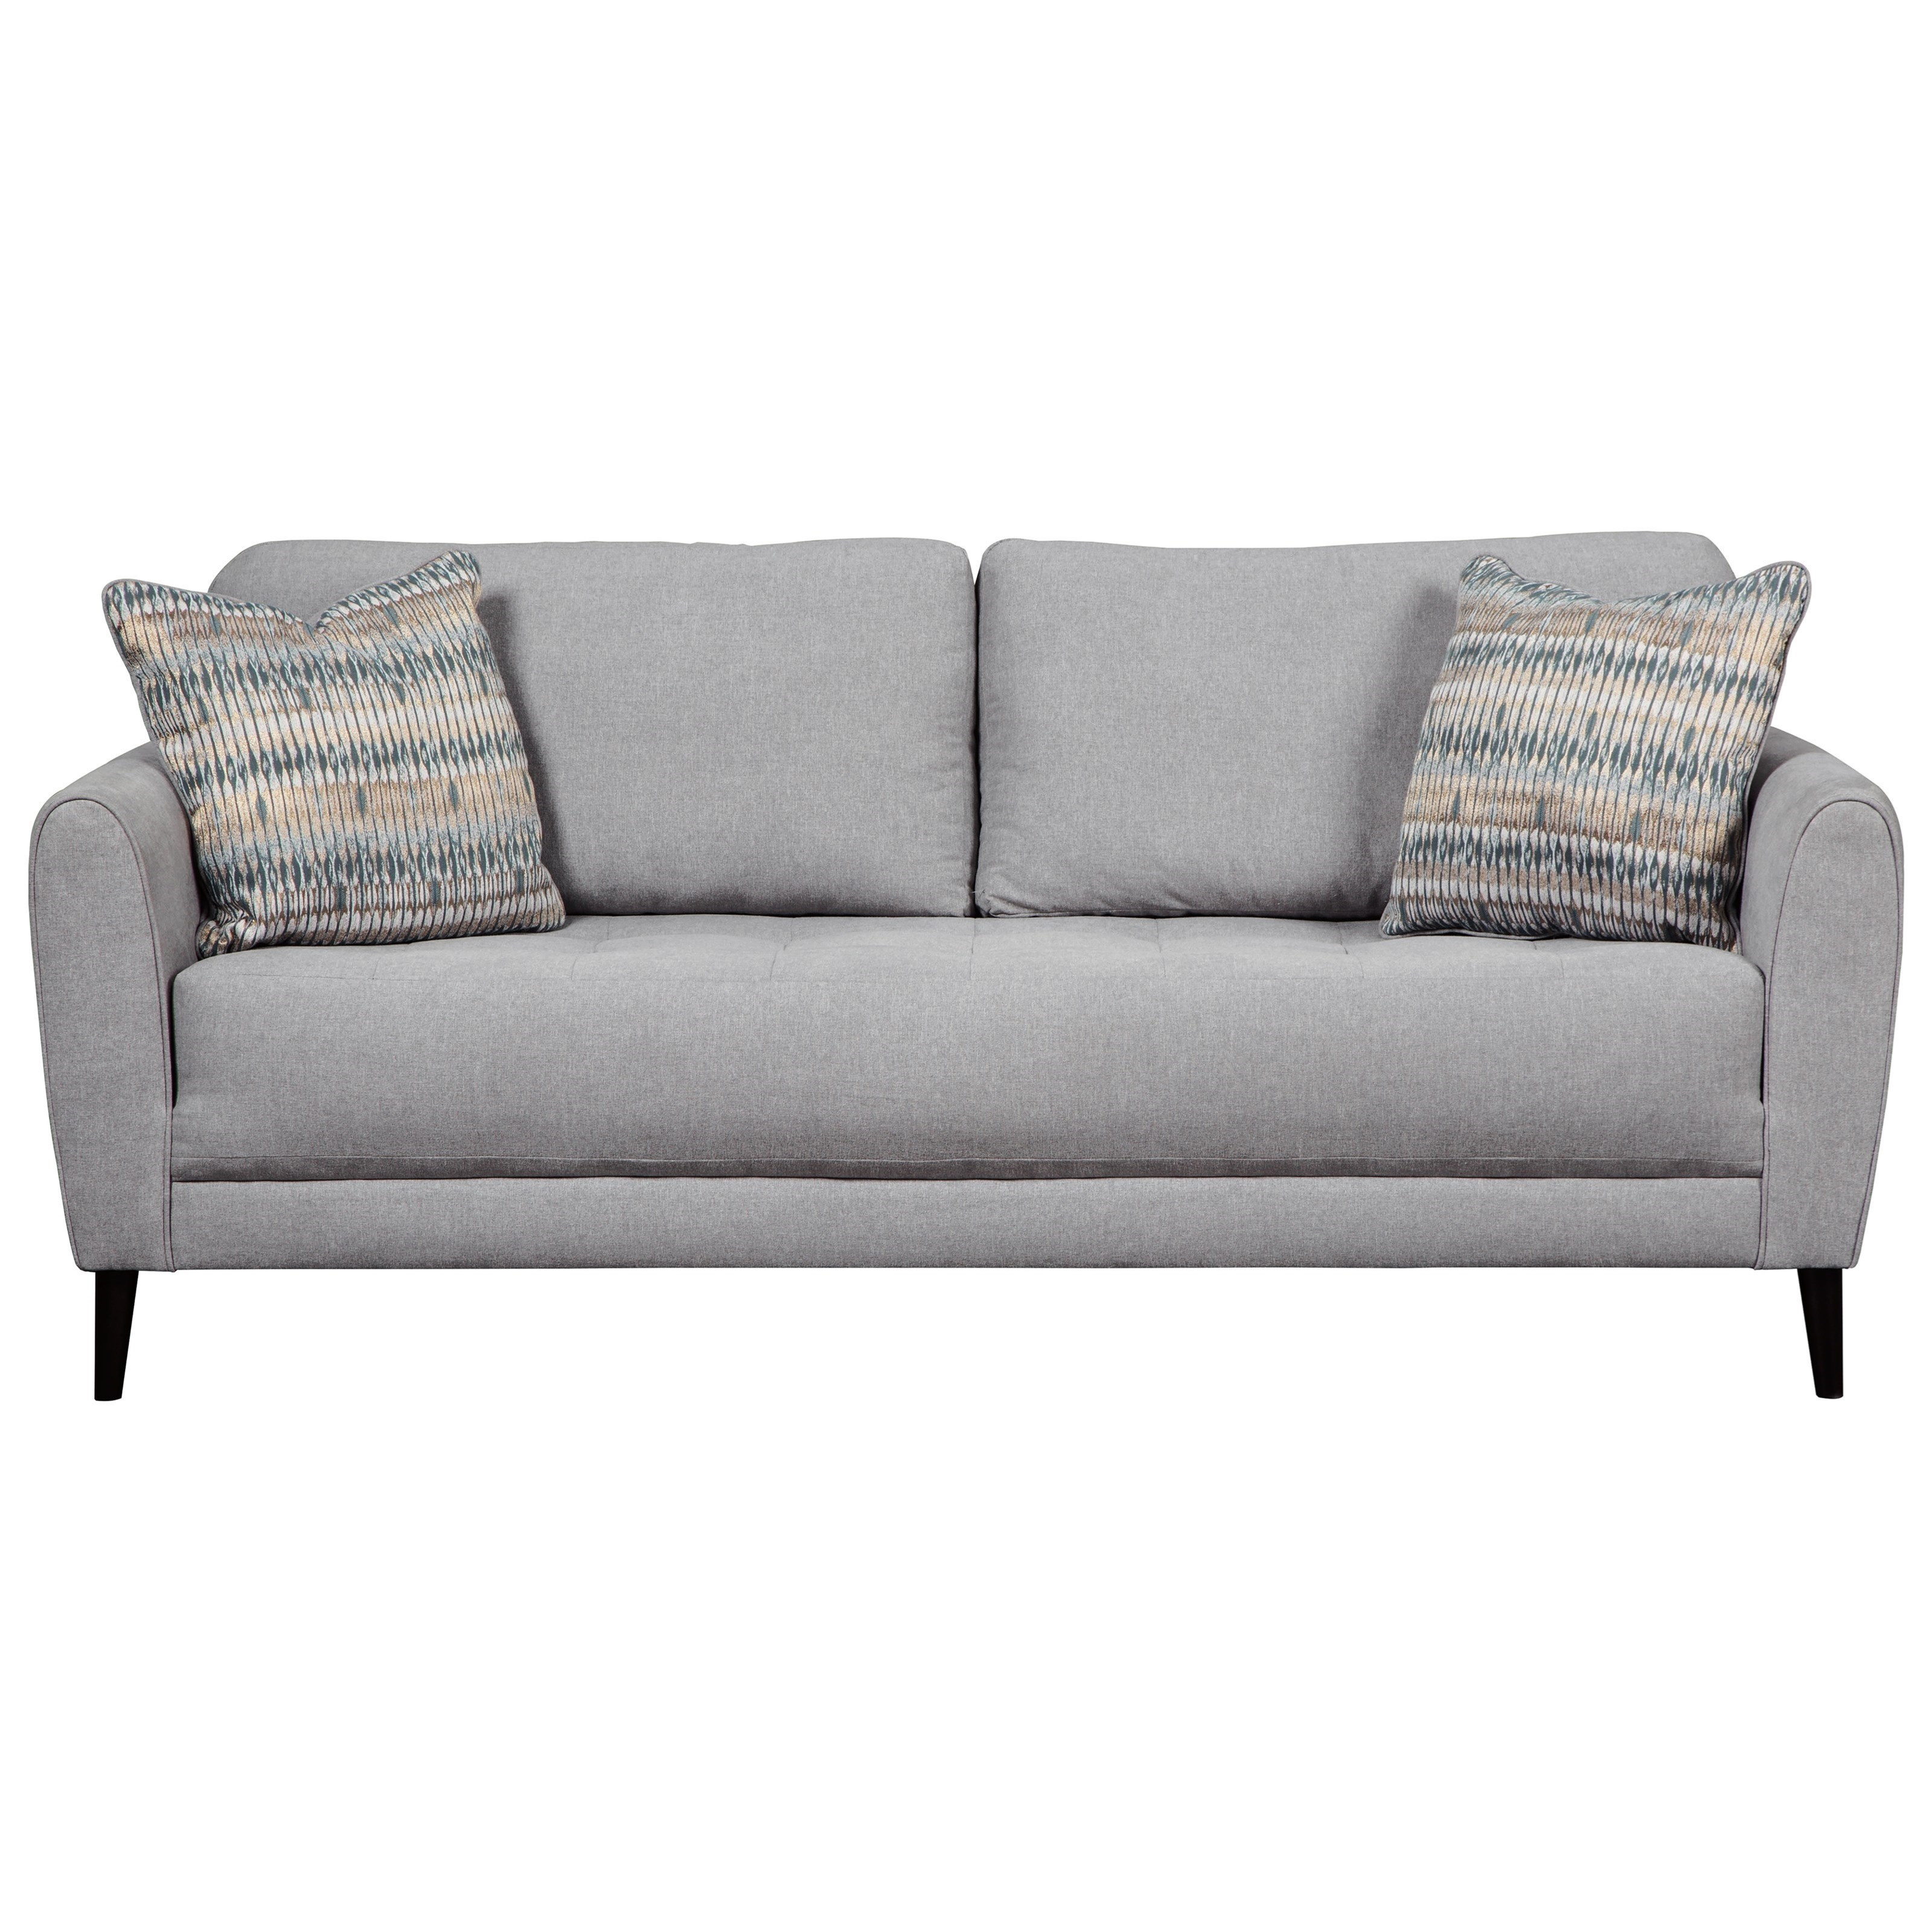 Signature Design by Ashley Cardello Sofa - Item Number: 3240138